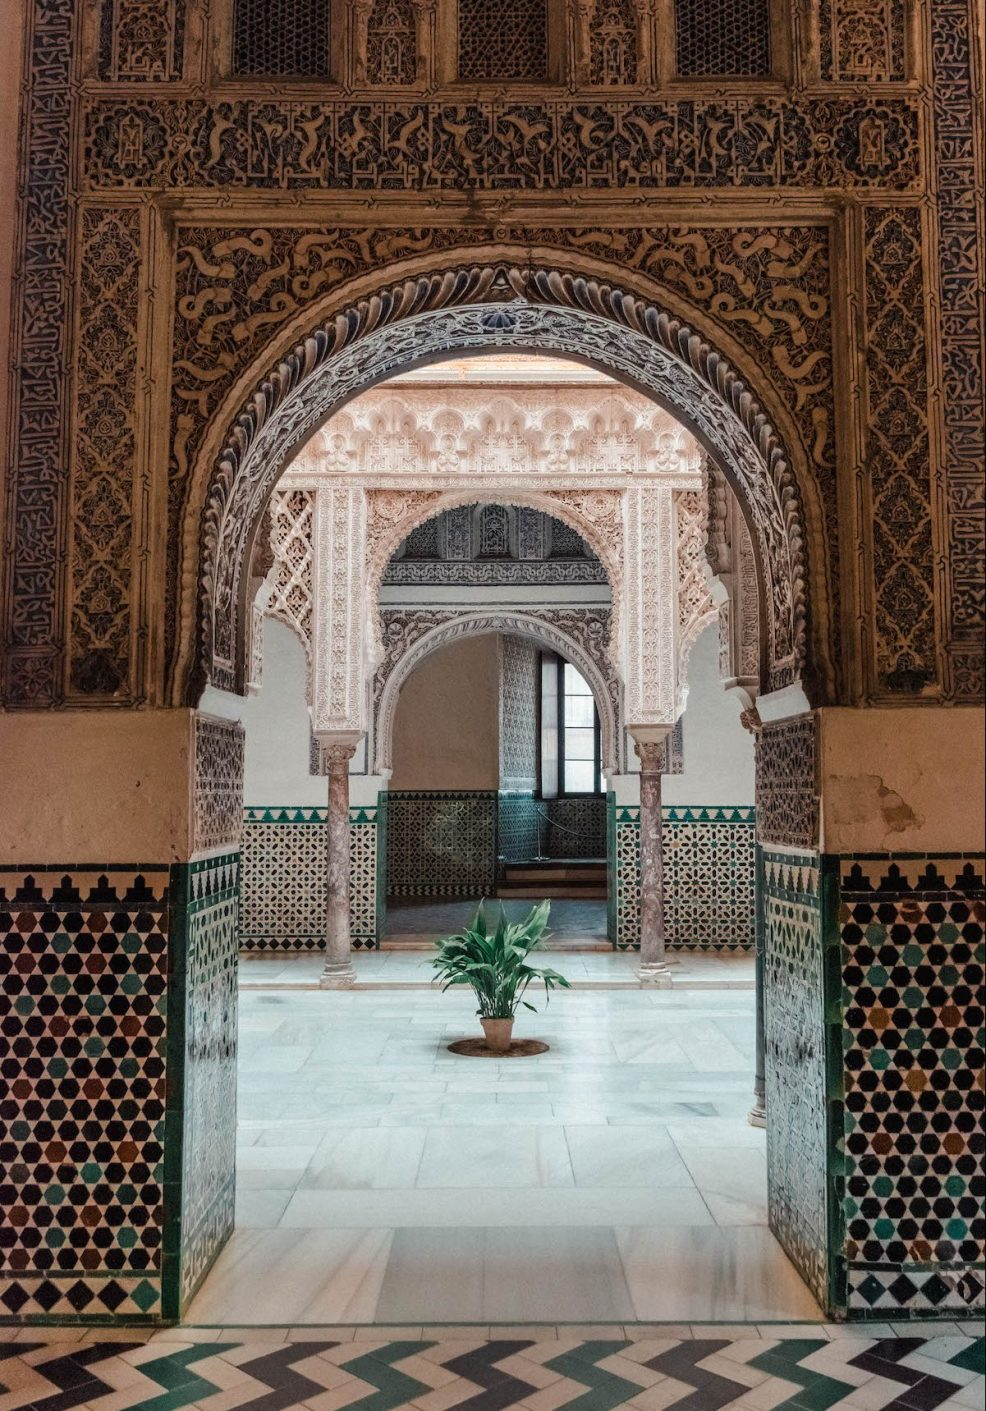 Stunning architecture at Real Alcázar de Sevilla